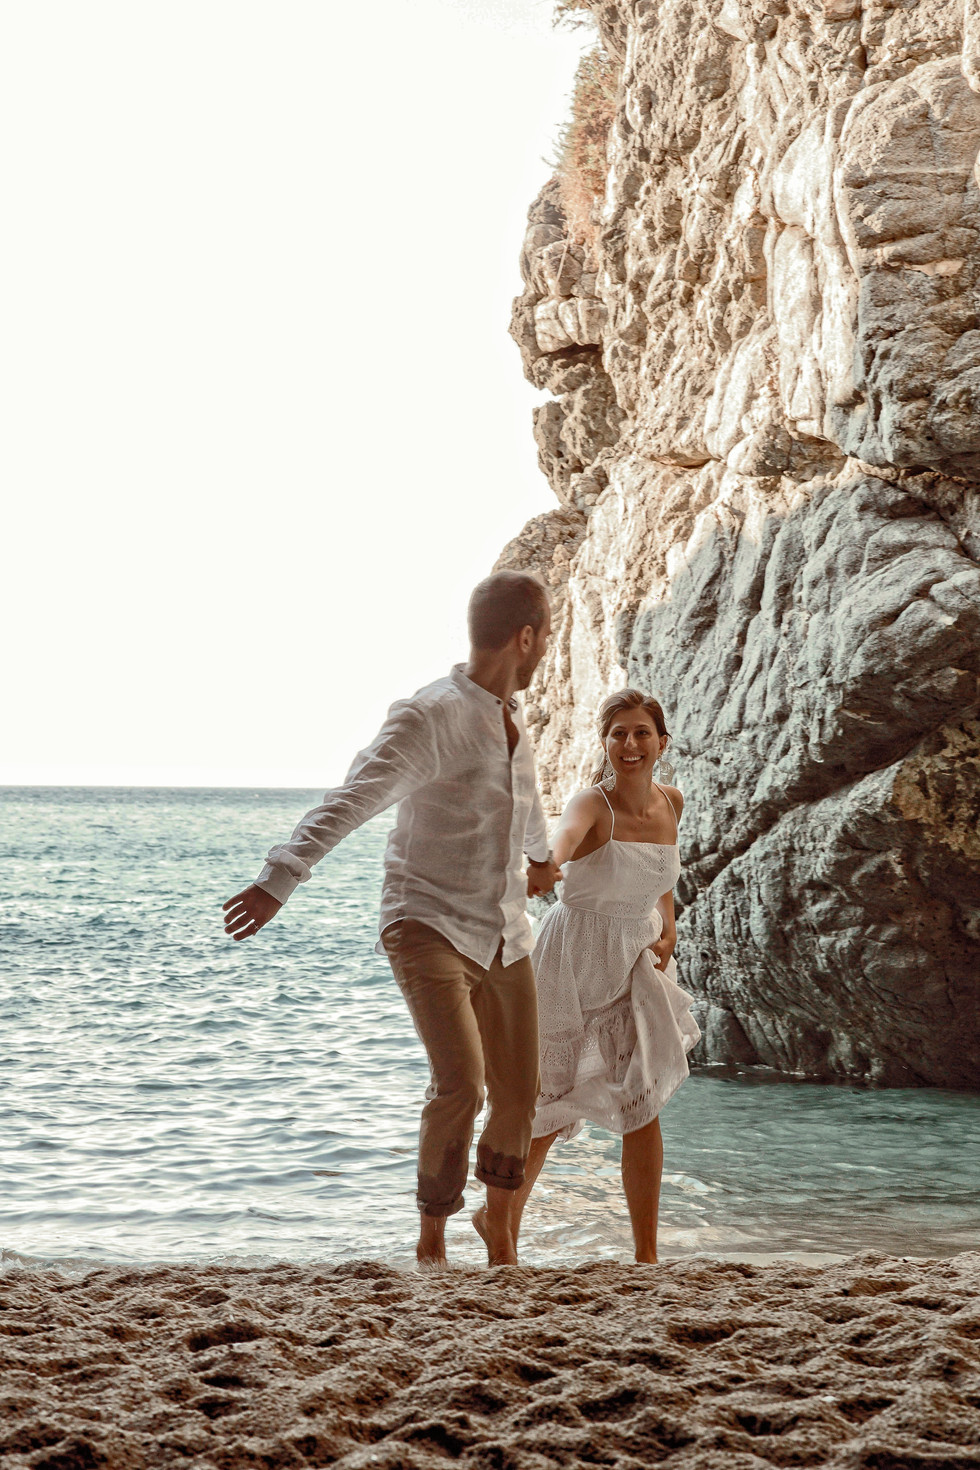 A+F Engagement session in Caminia (Calabria)